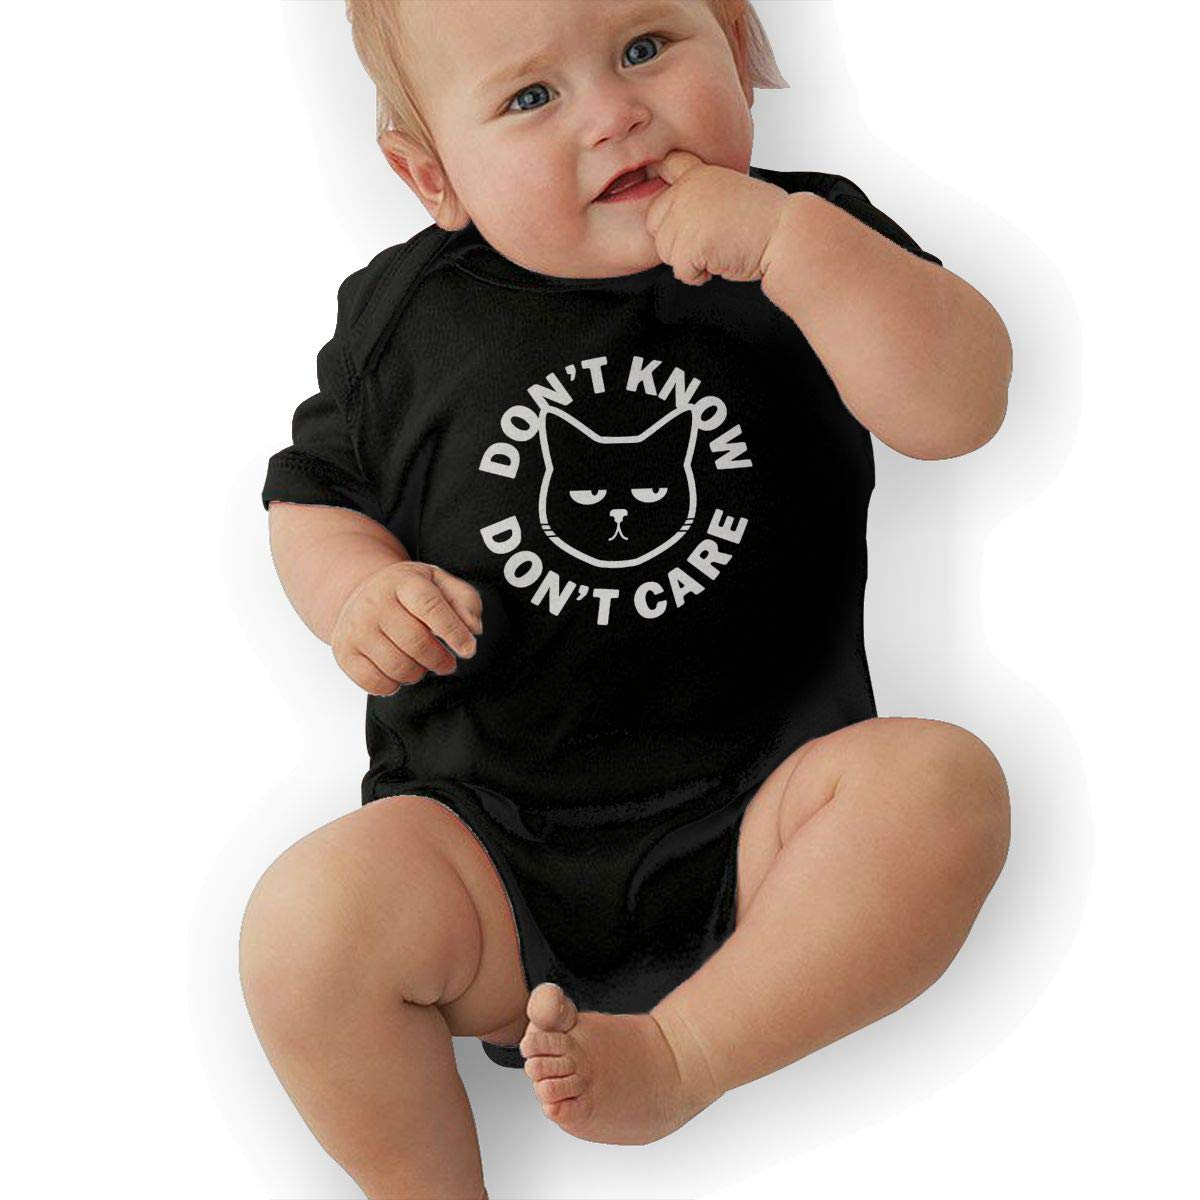 Mri-le2 Toddler Baby Boy Girl Short Sleeve Jumpsuit Dont Know Dont Care-1 Toddler Jumpsuit